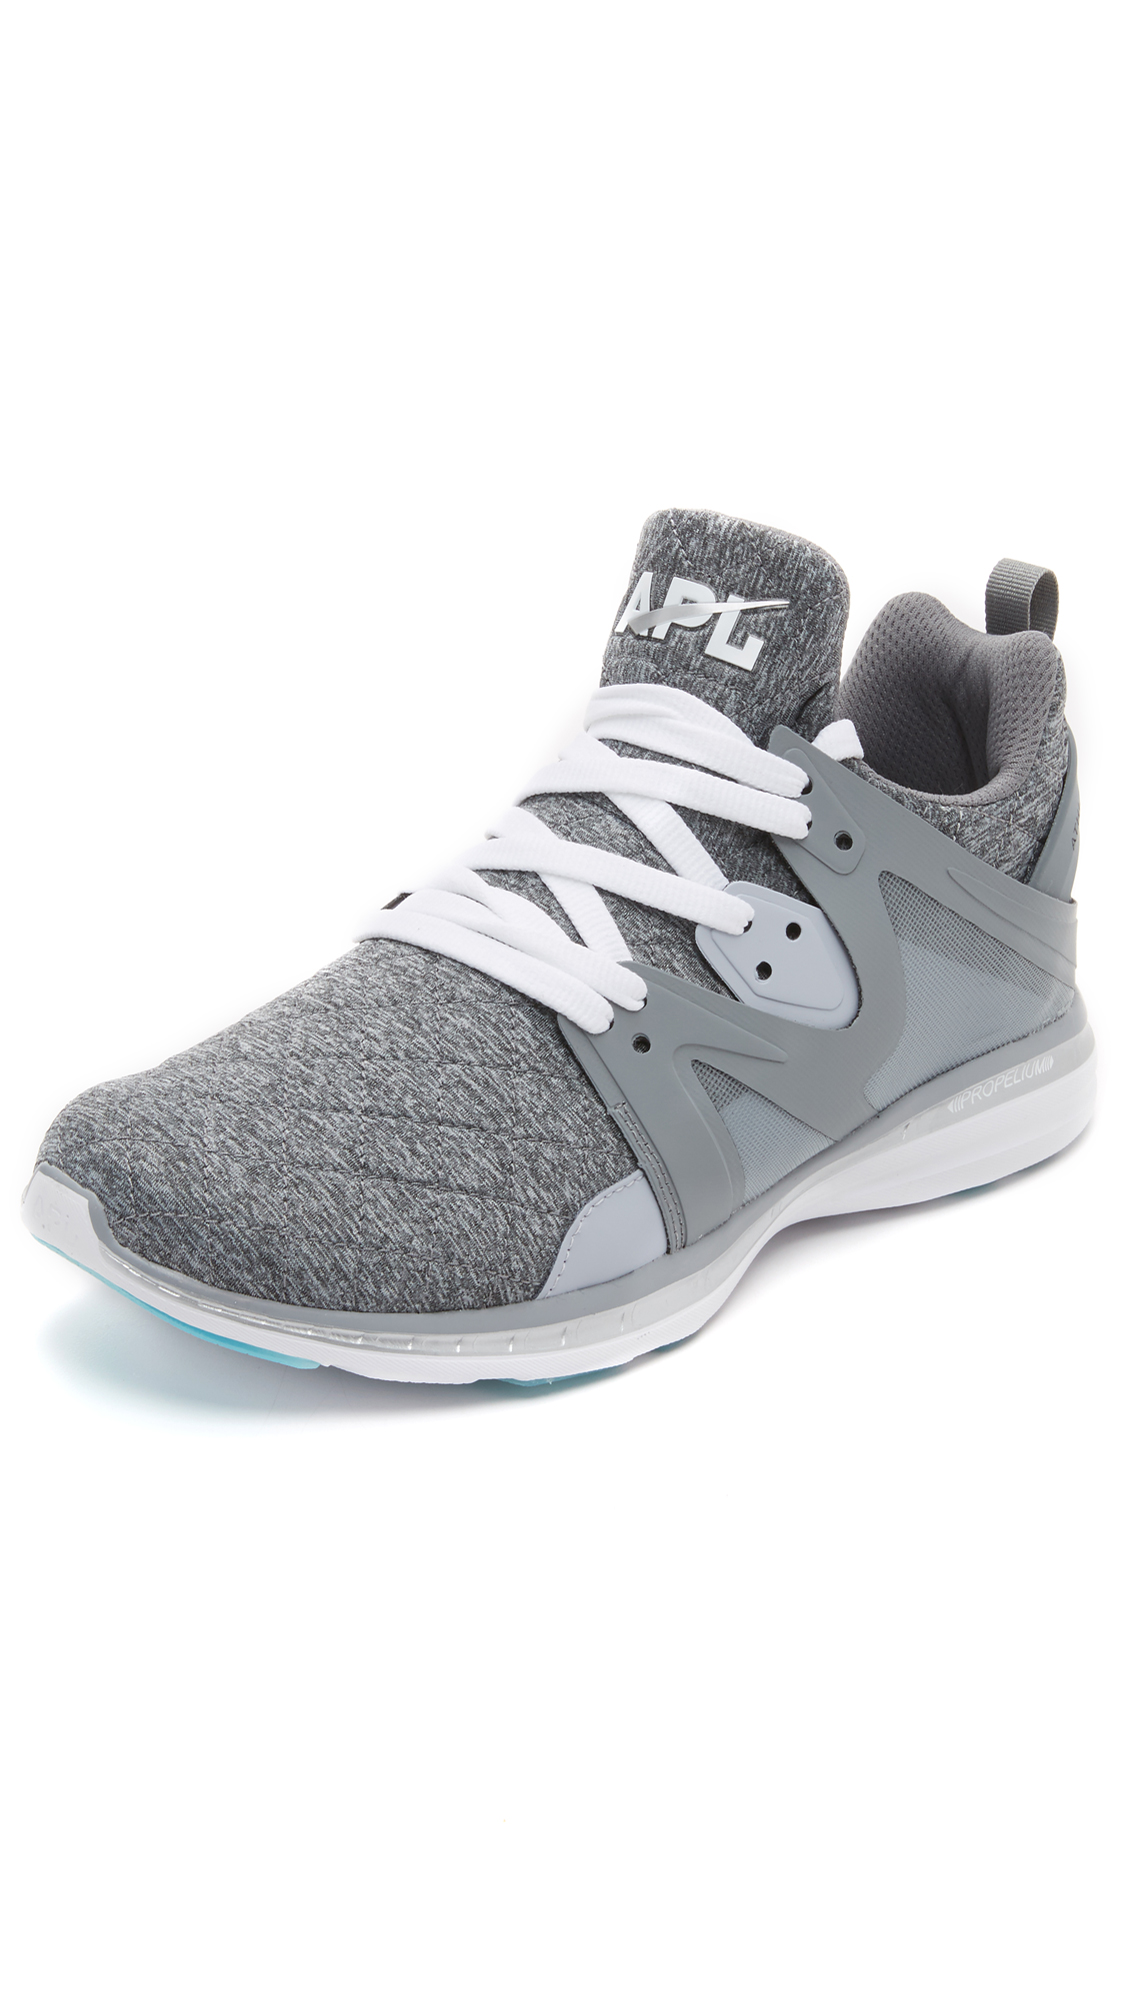 Athletic Propulsion Labs Shoes Review